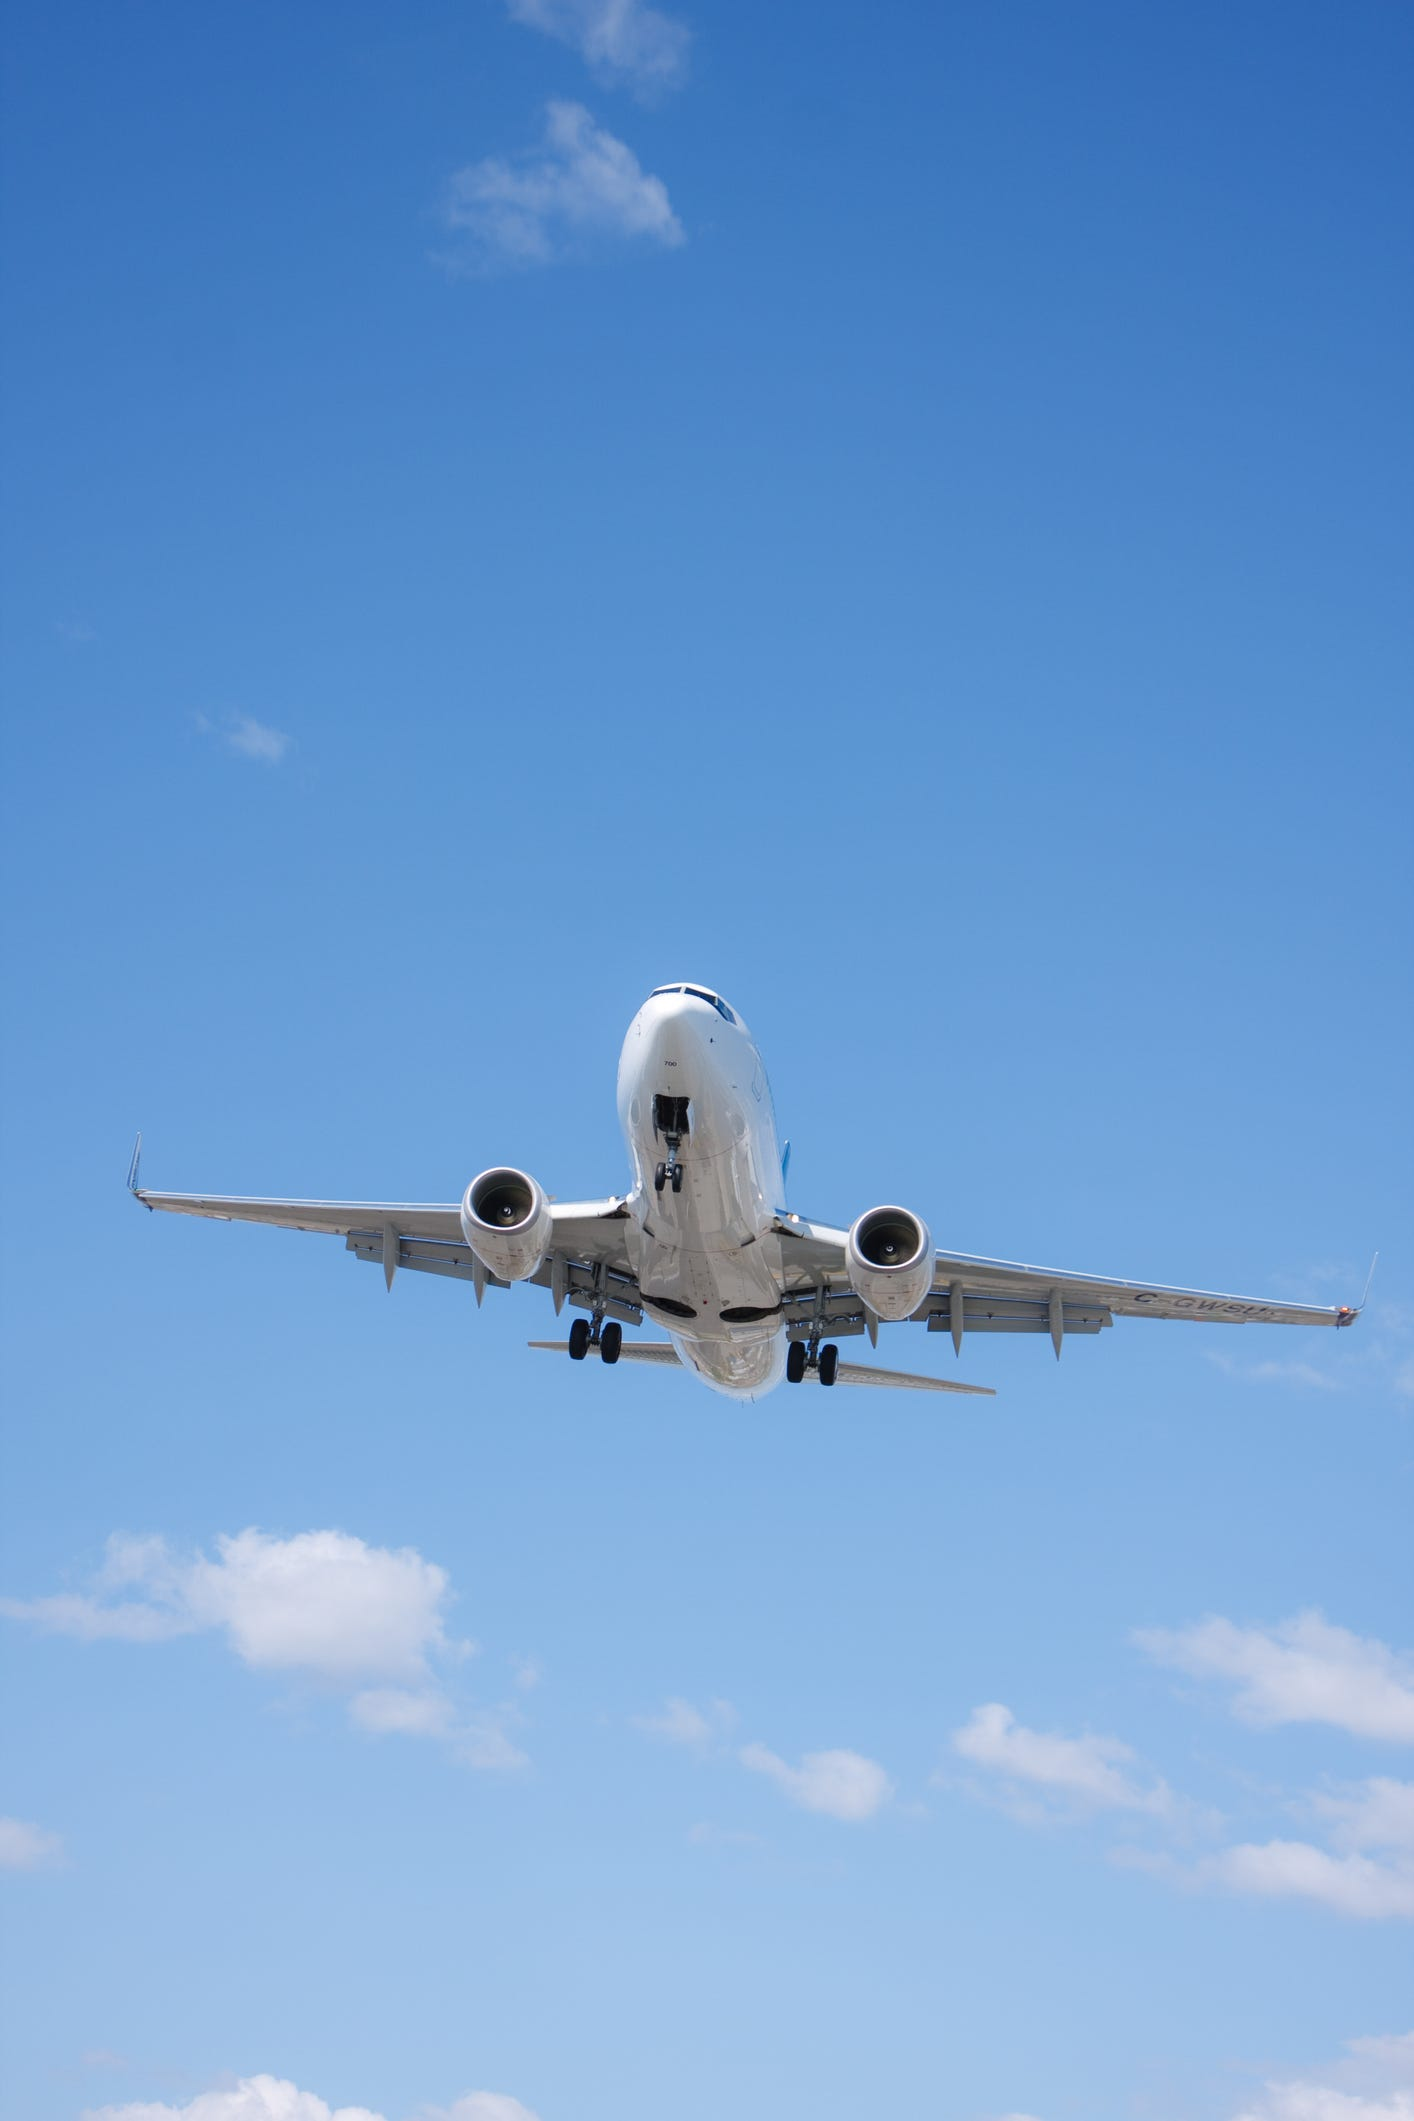 Ask the Captain: How do you land a plane in rapidly changing crosswinds?